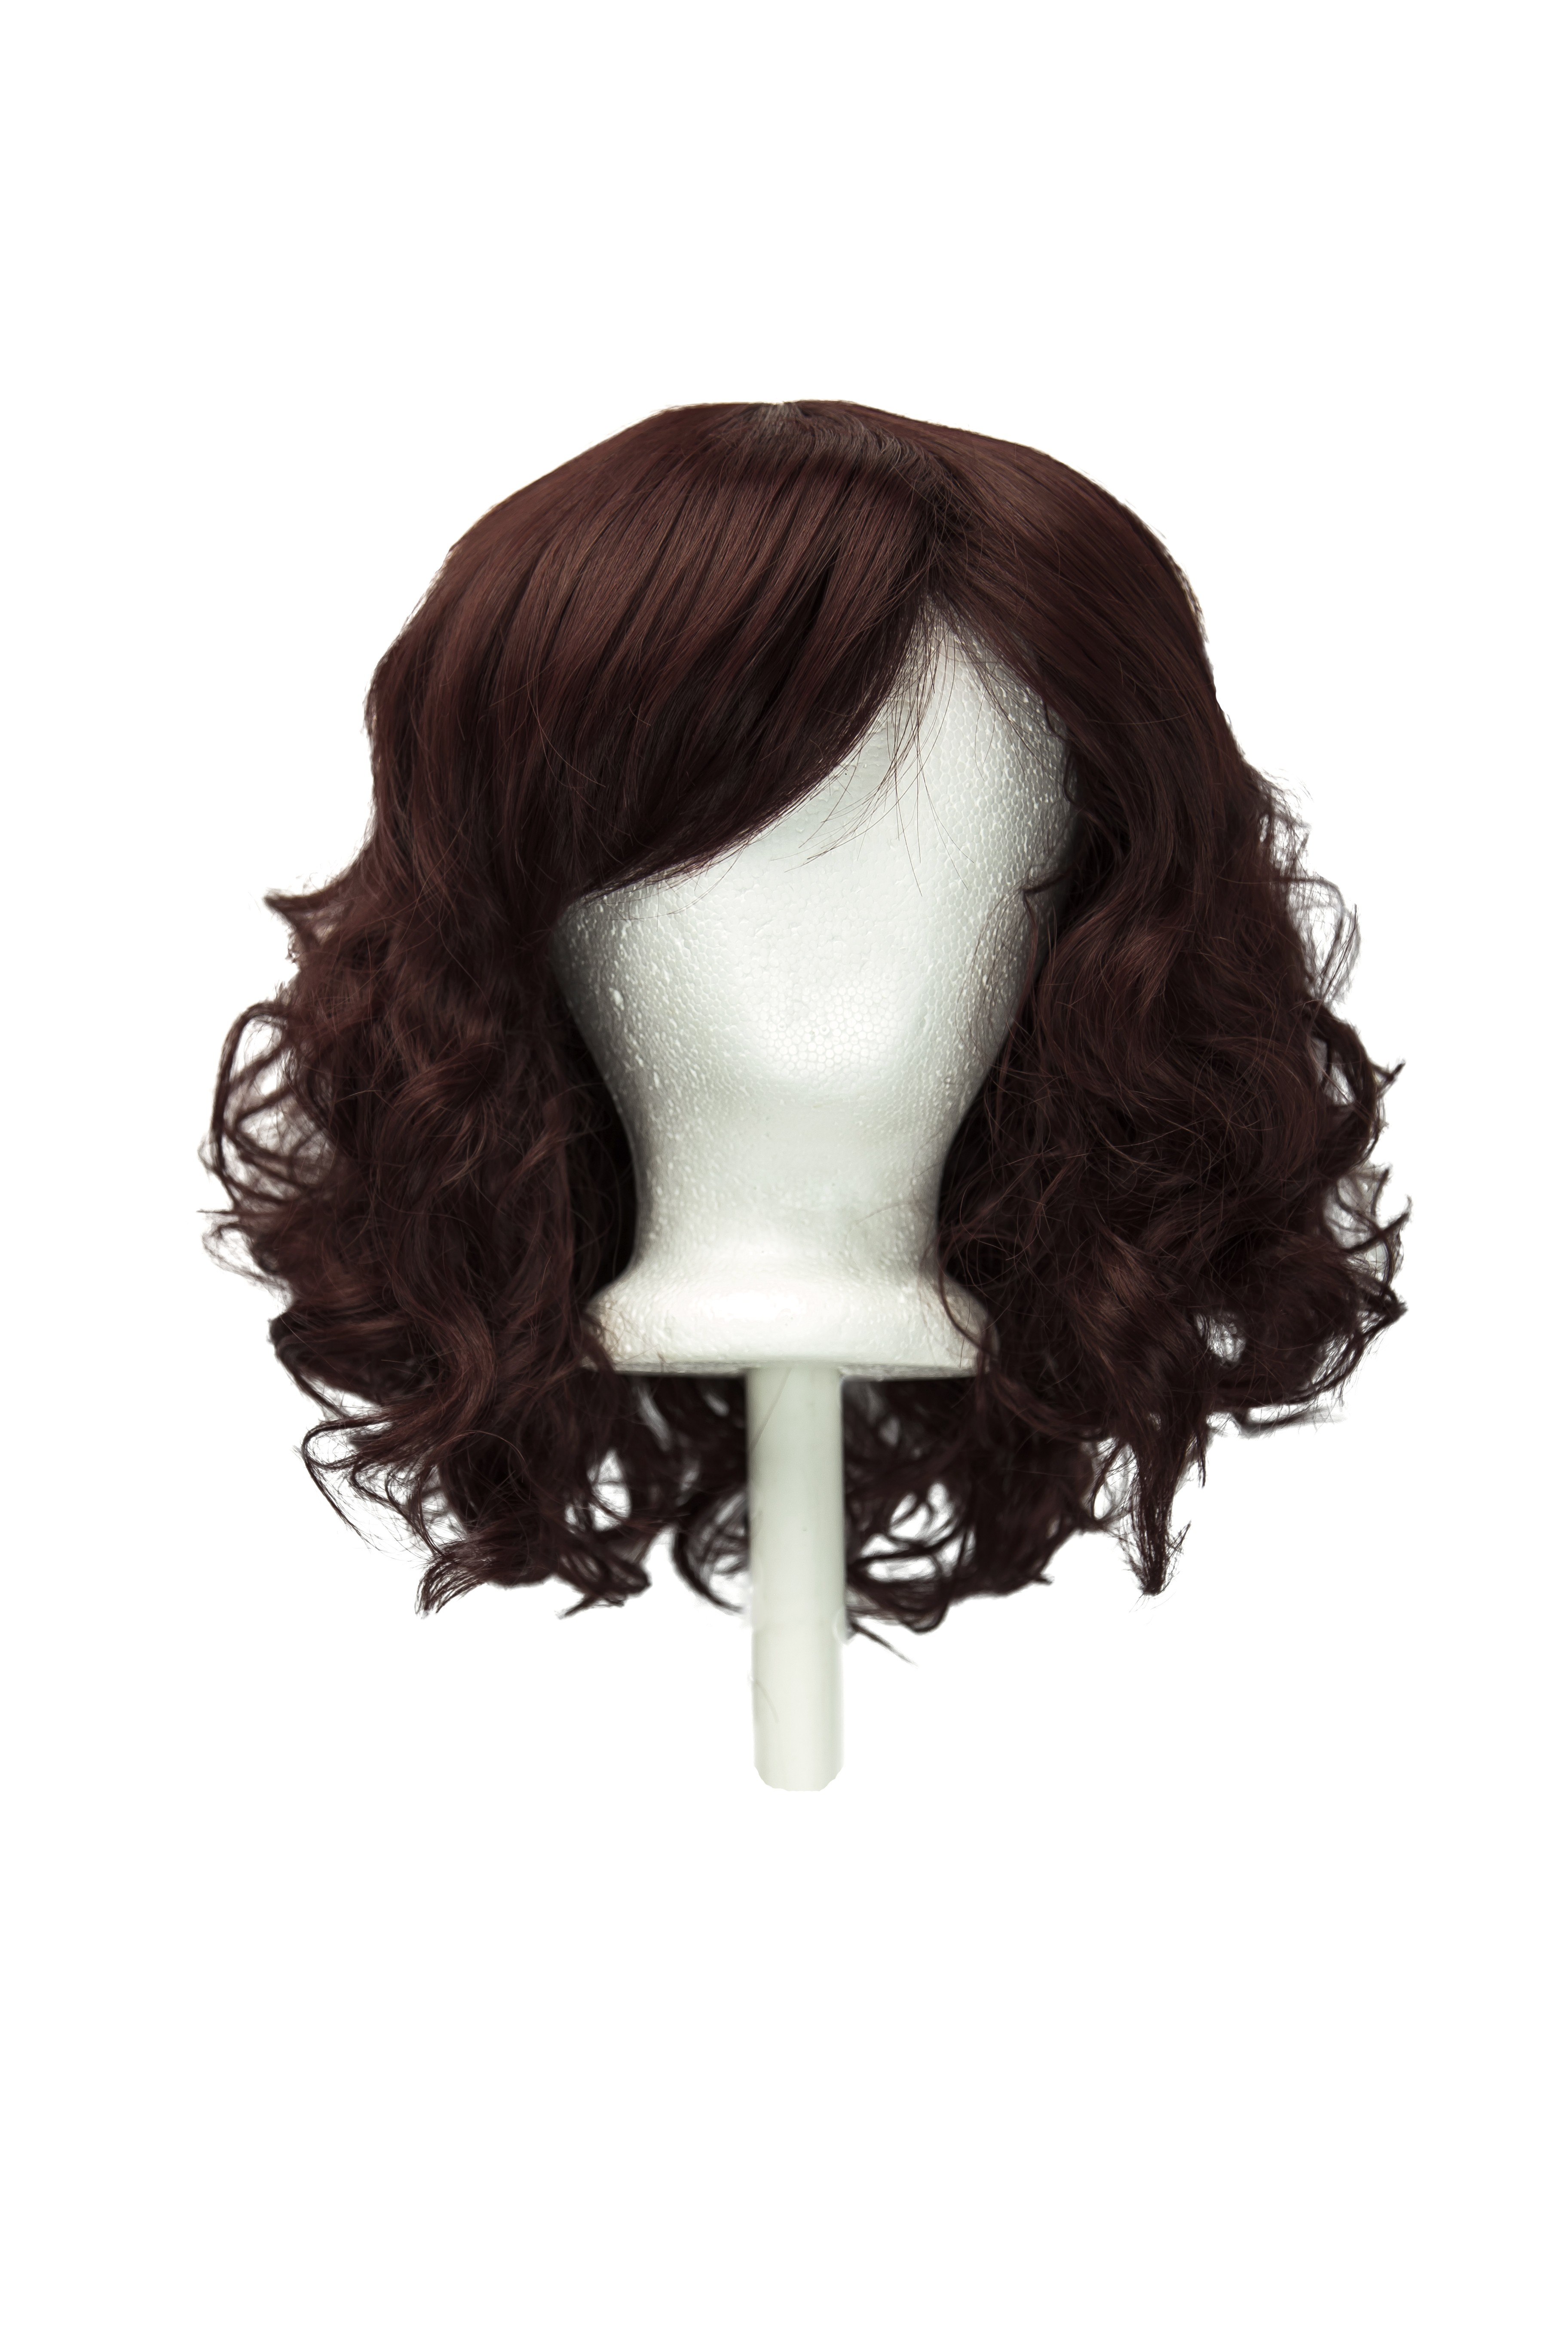 Alice - Rustic Red Mirabelle Daily Wear Wig